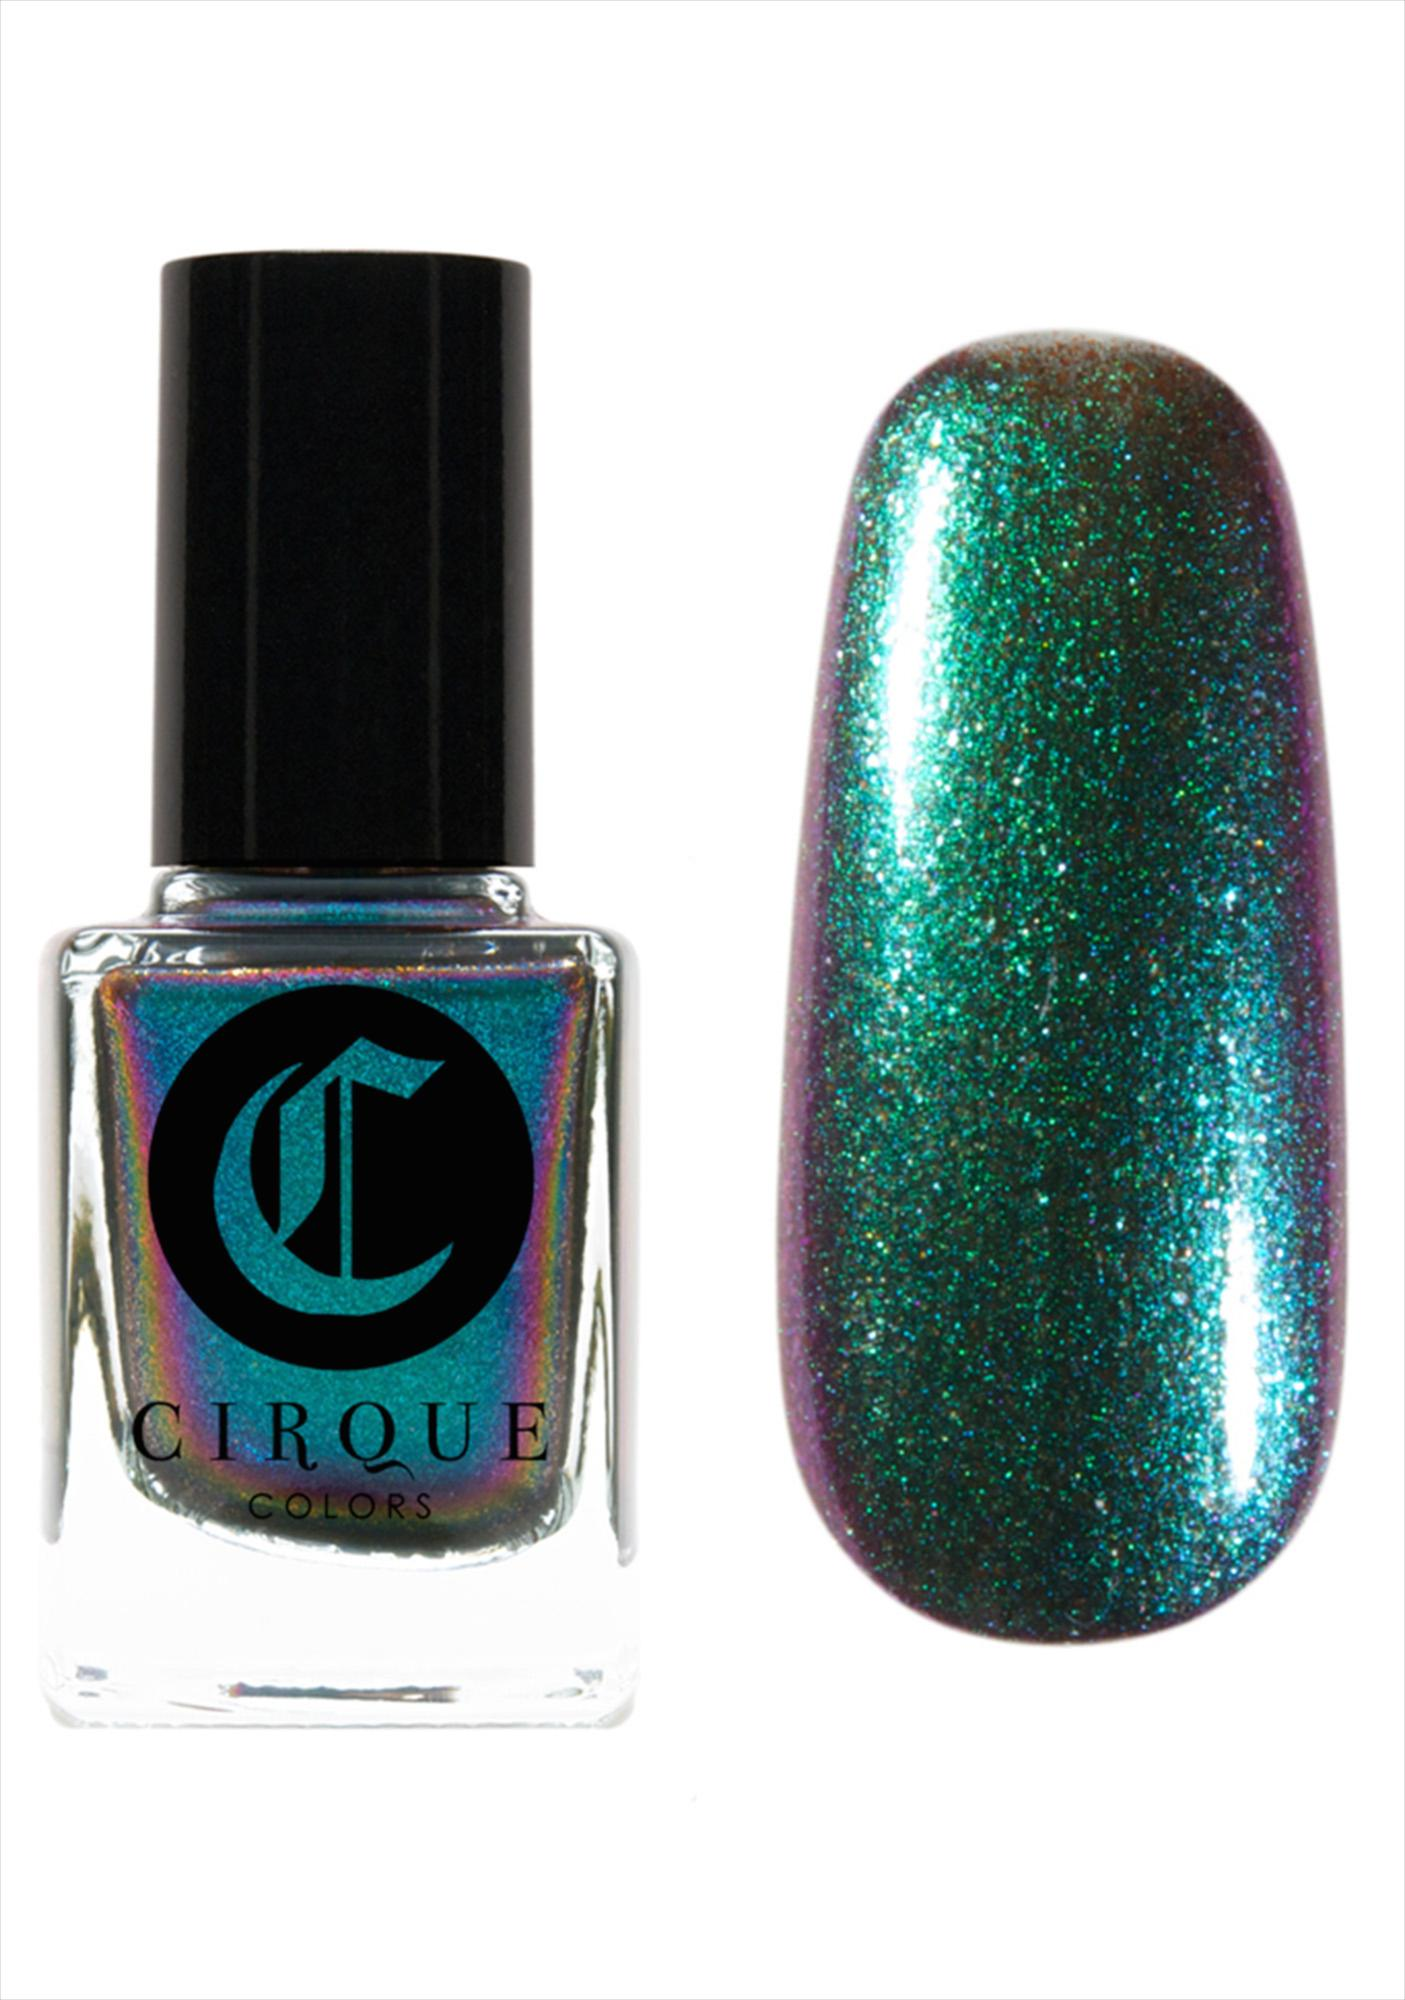 Cirque Colors Ghost In The Machine Nail Polish